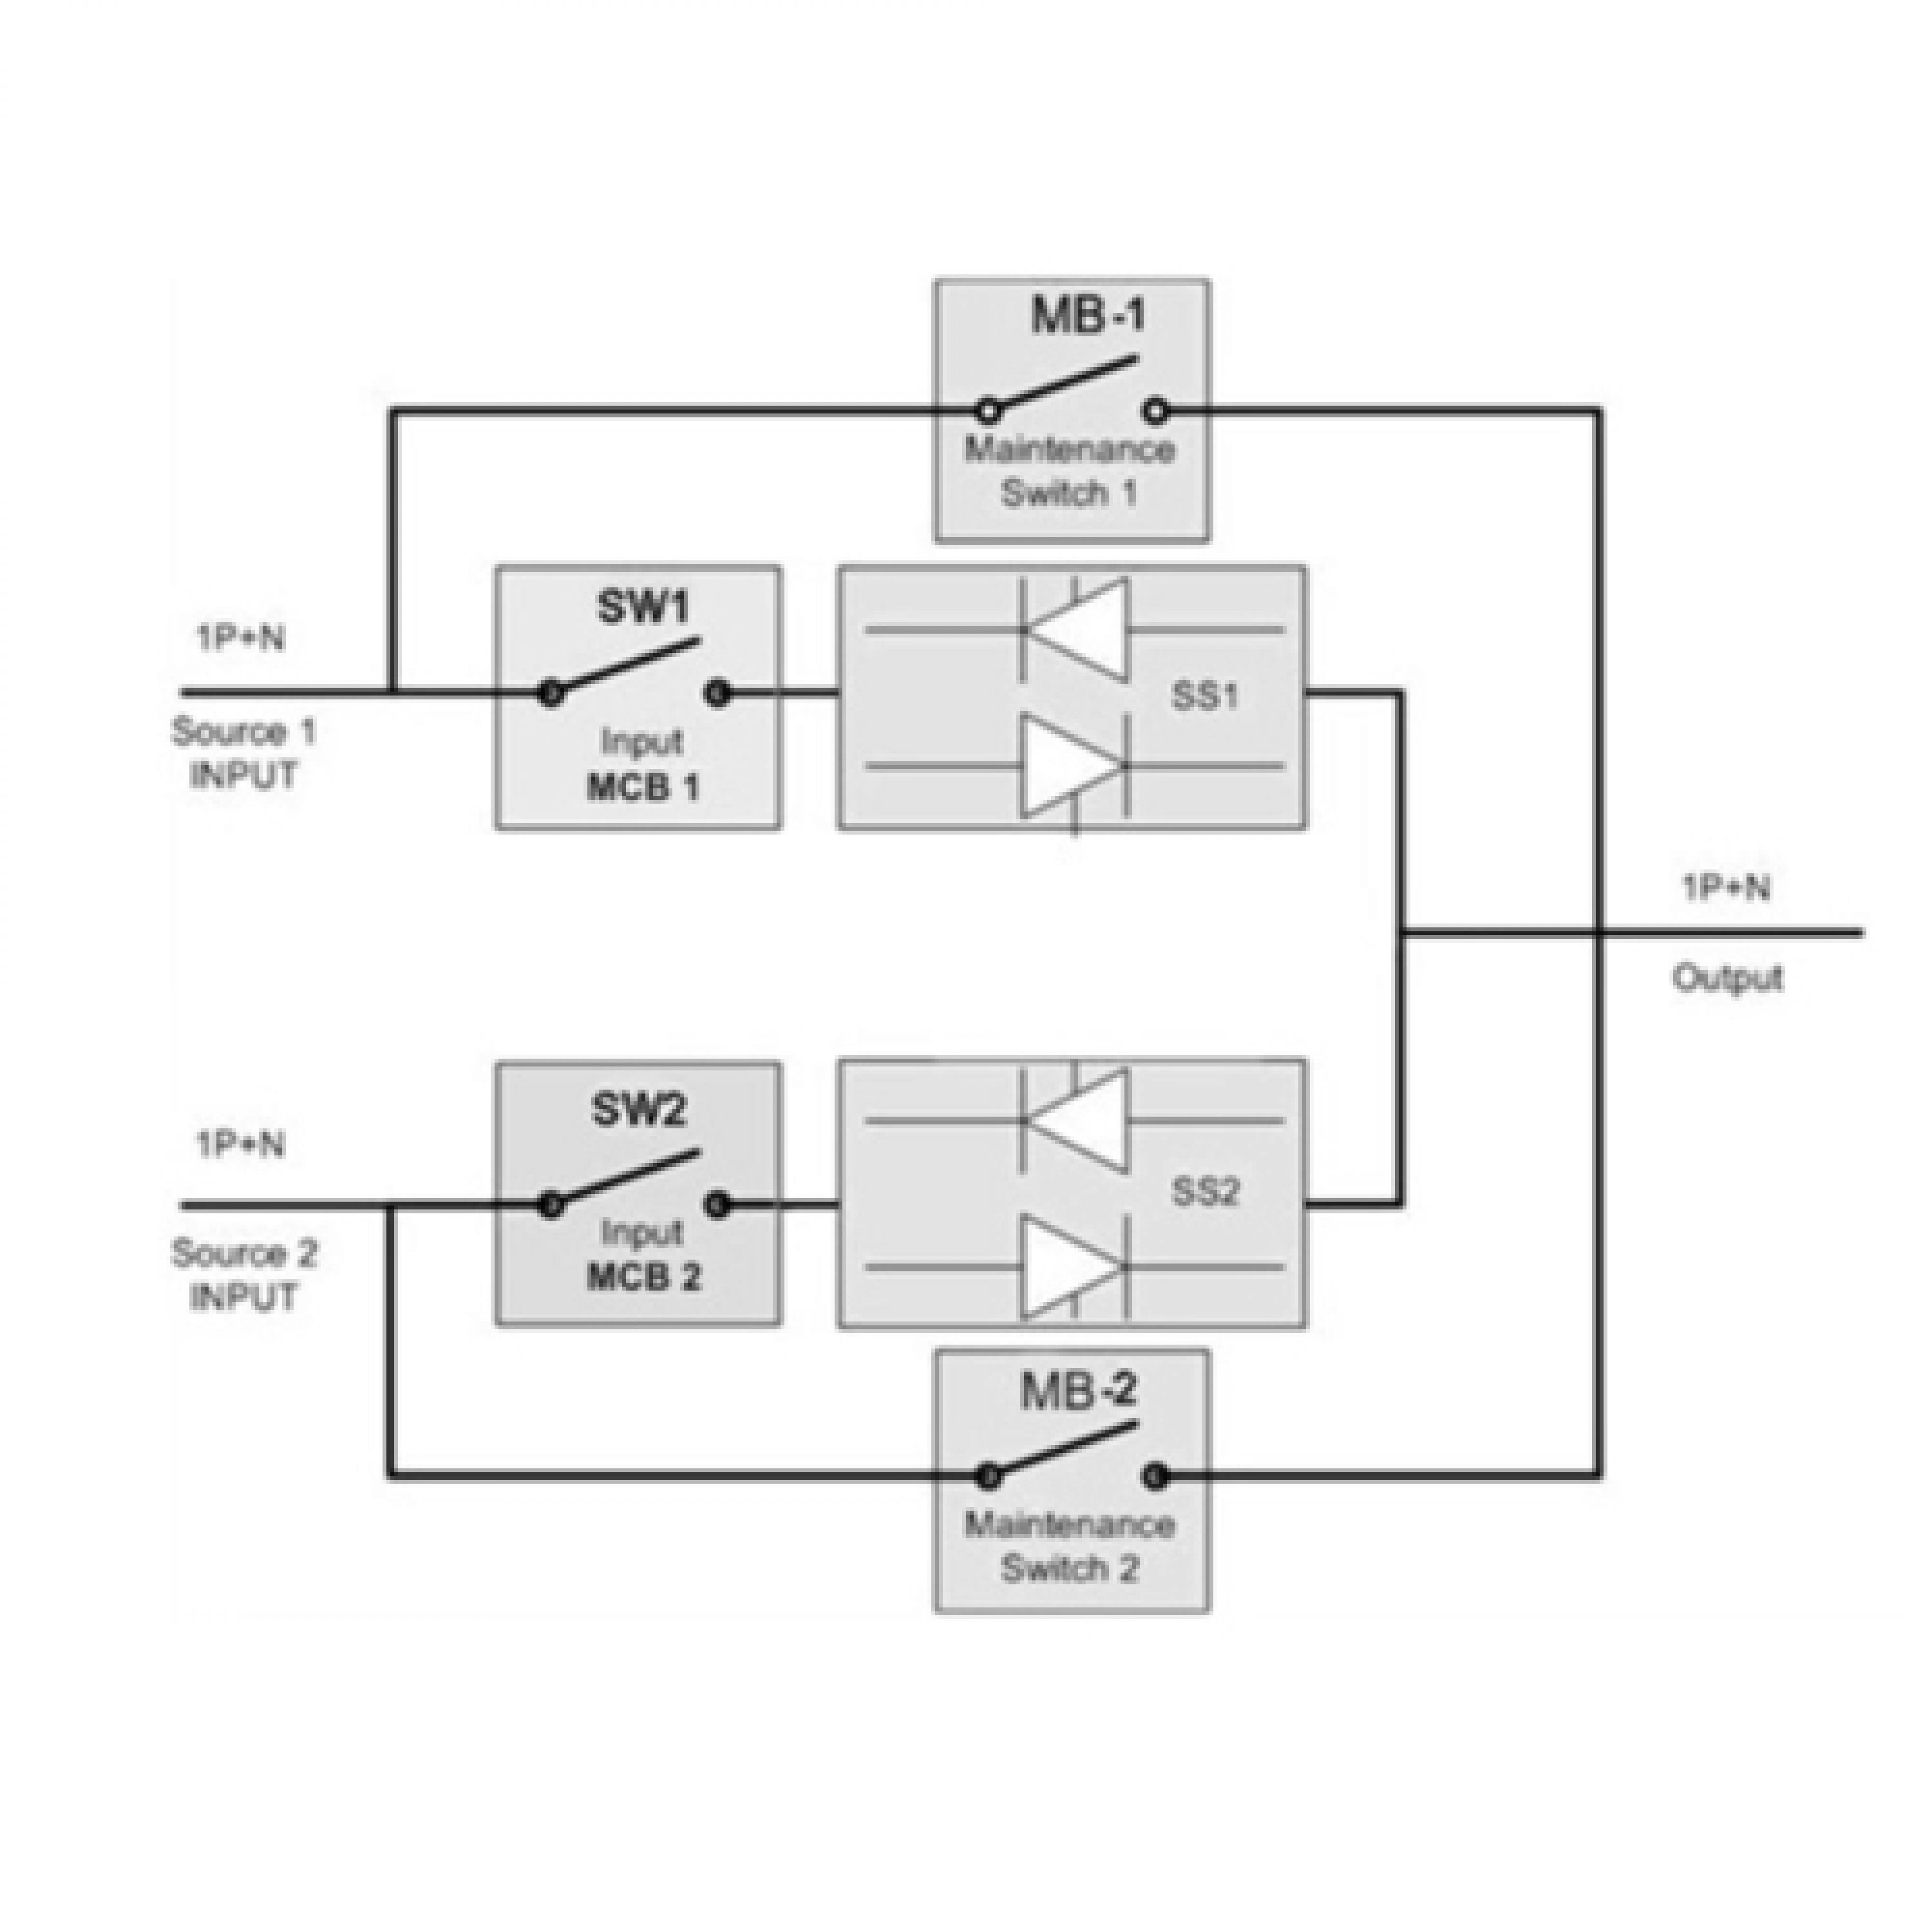 Ats16 Static Changeover Switch Up To 16a Iec 320 Wiring Diagram Ats 16 Is A That Ensures Continuity Of Power Supply For Enhanced Safety And Reliability